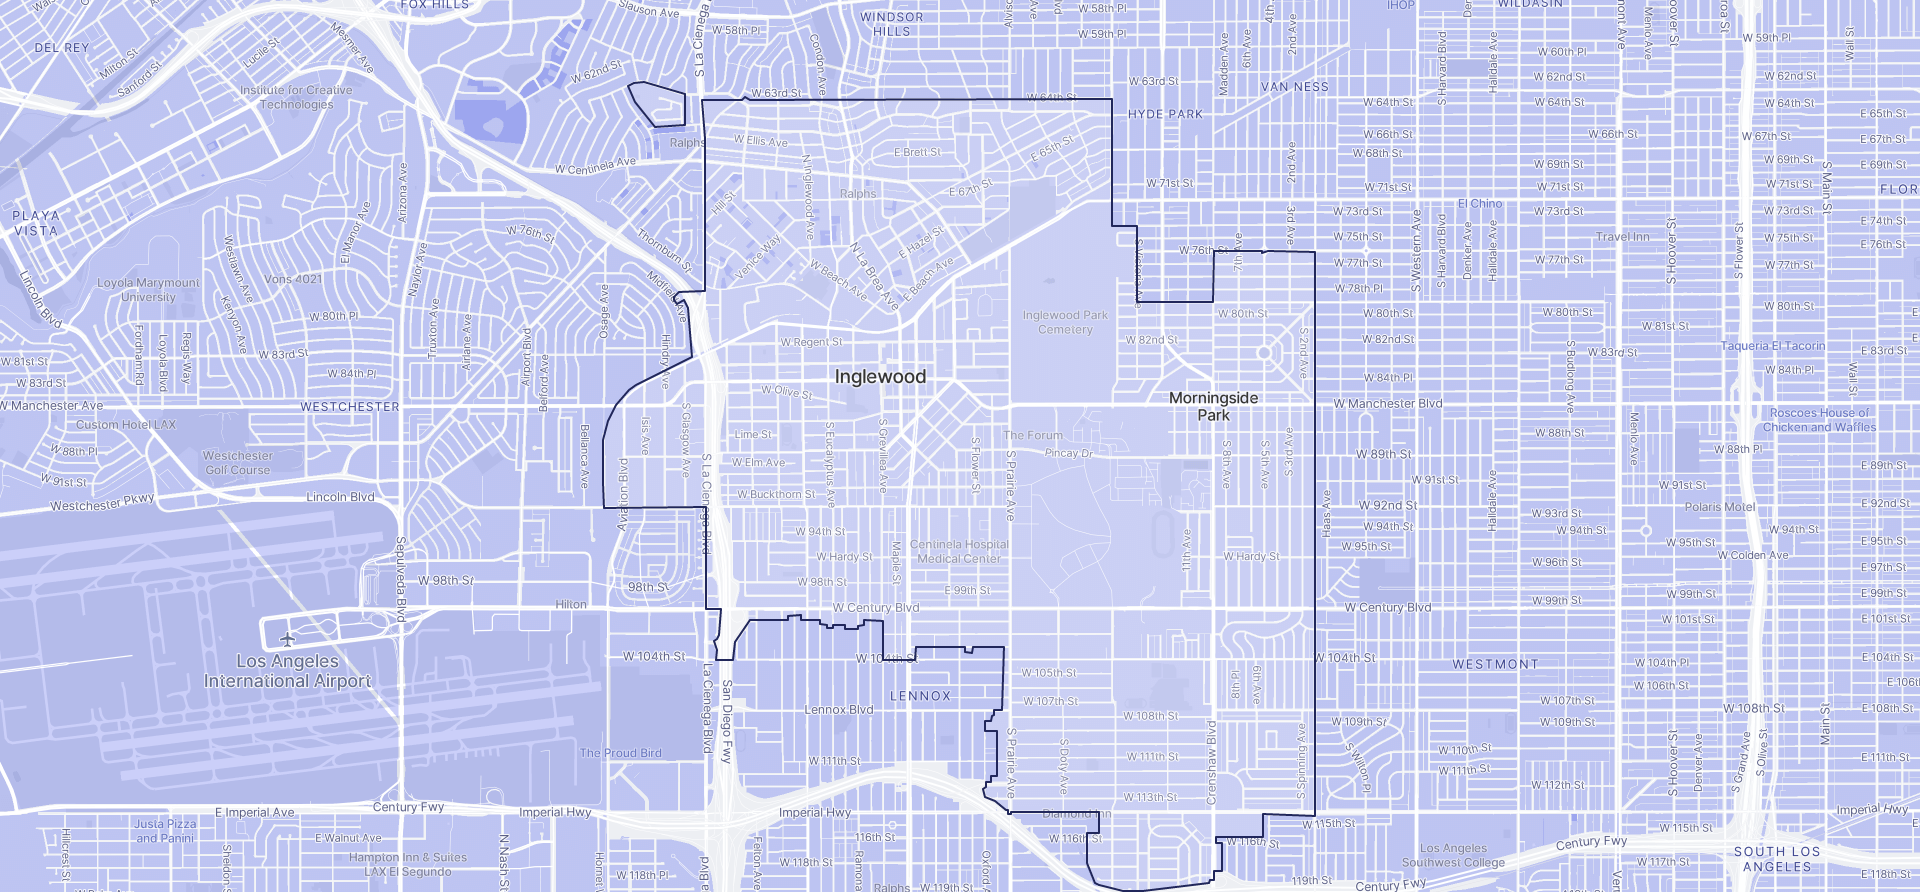 Image of Inglewood boundaries on a map.